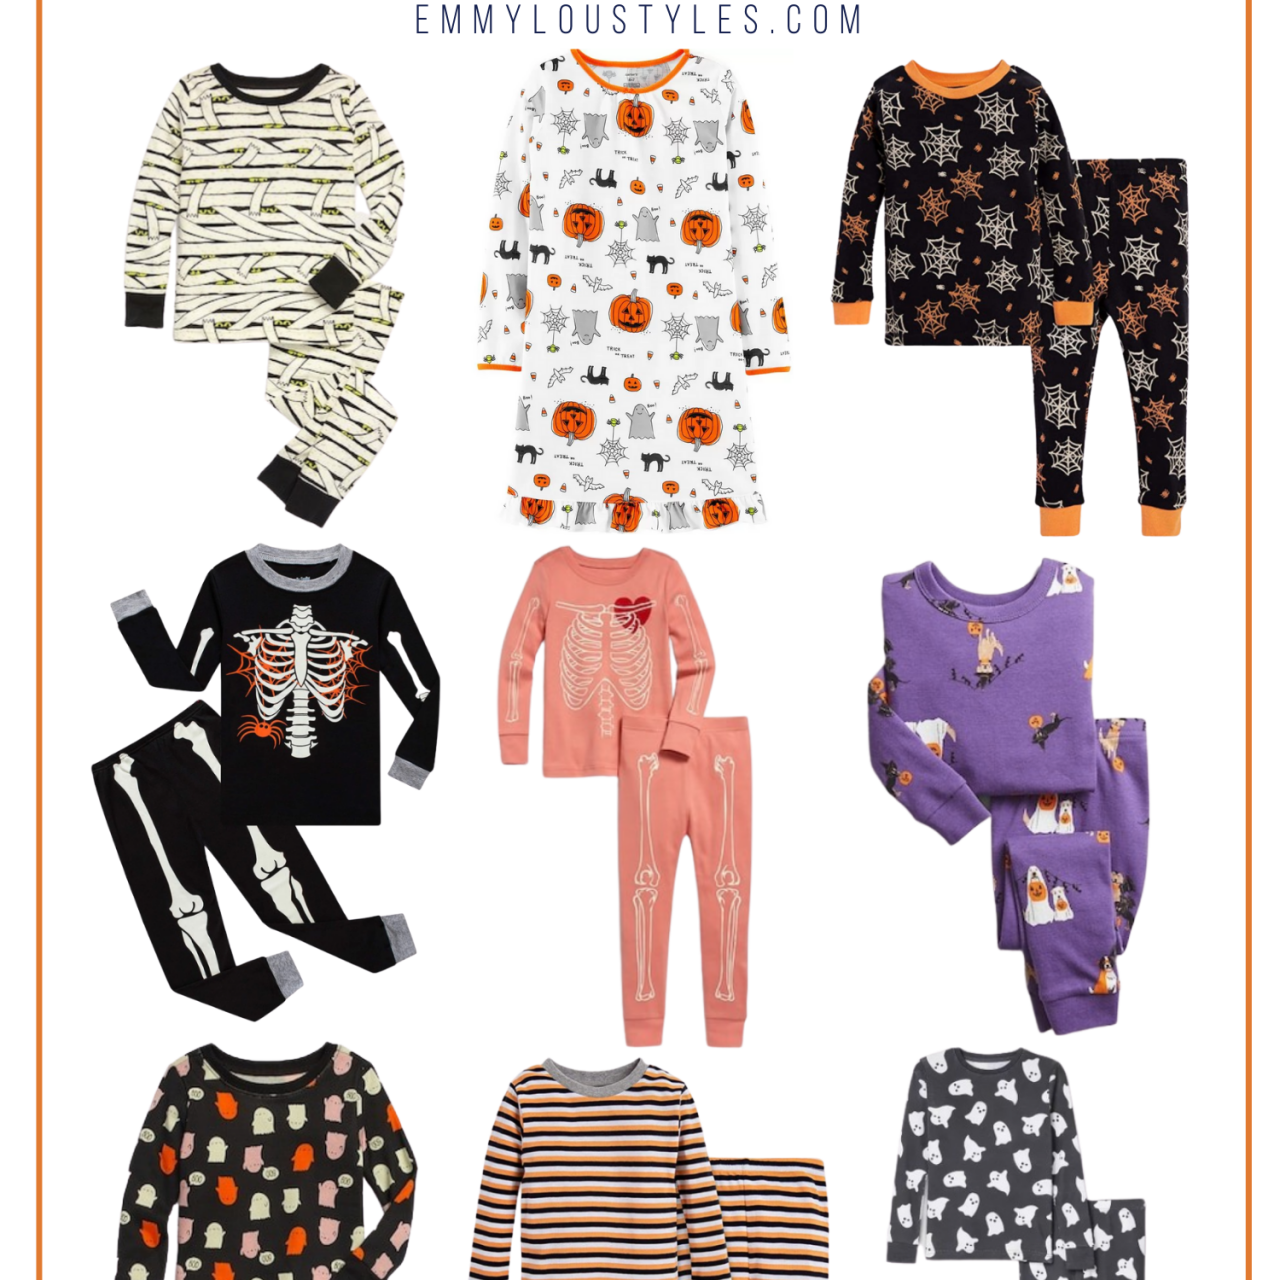 15 Halloween Pajama Sets for Kids